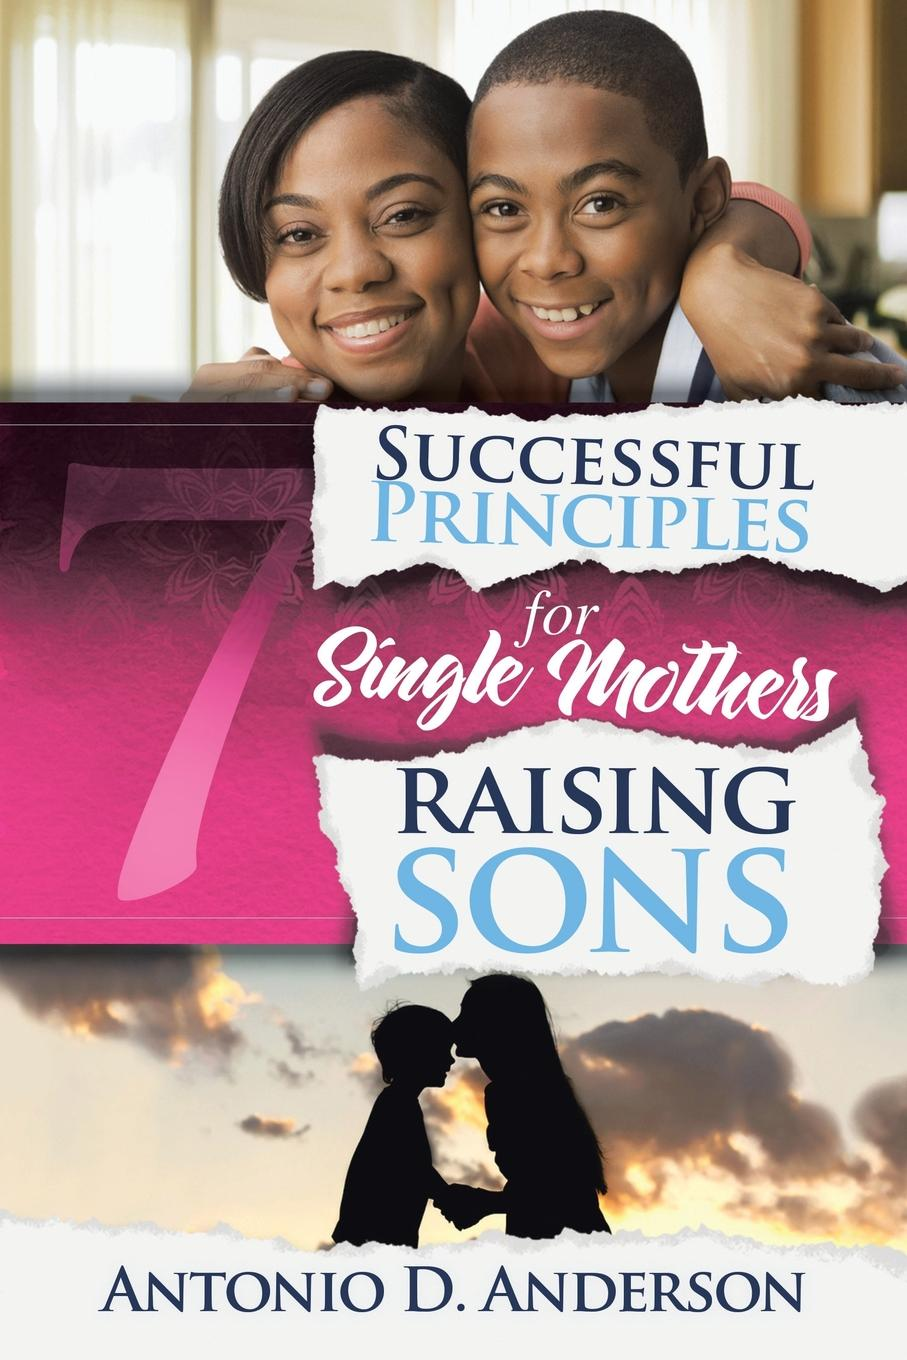 Antonio D. Anderson 7 Successful Principles for Single Mothers Raising Sons paula lytle lifeline to young mothers